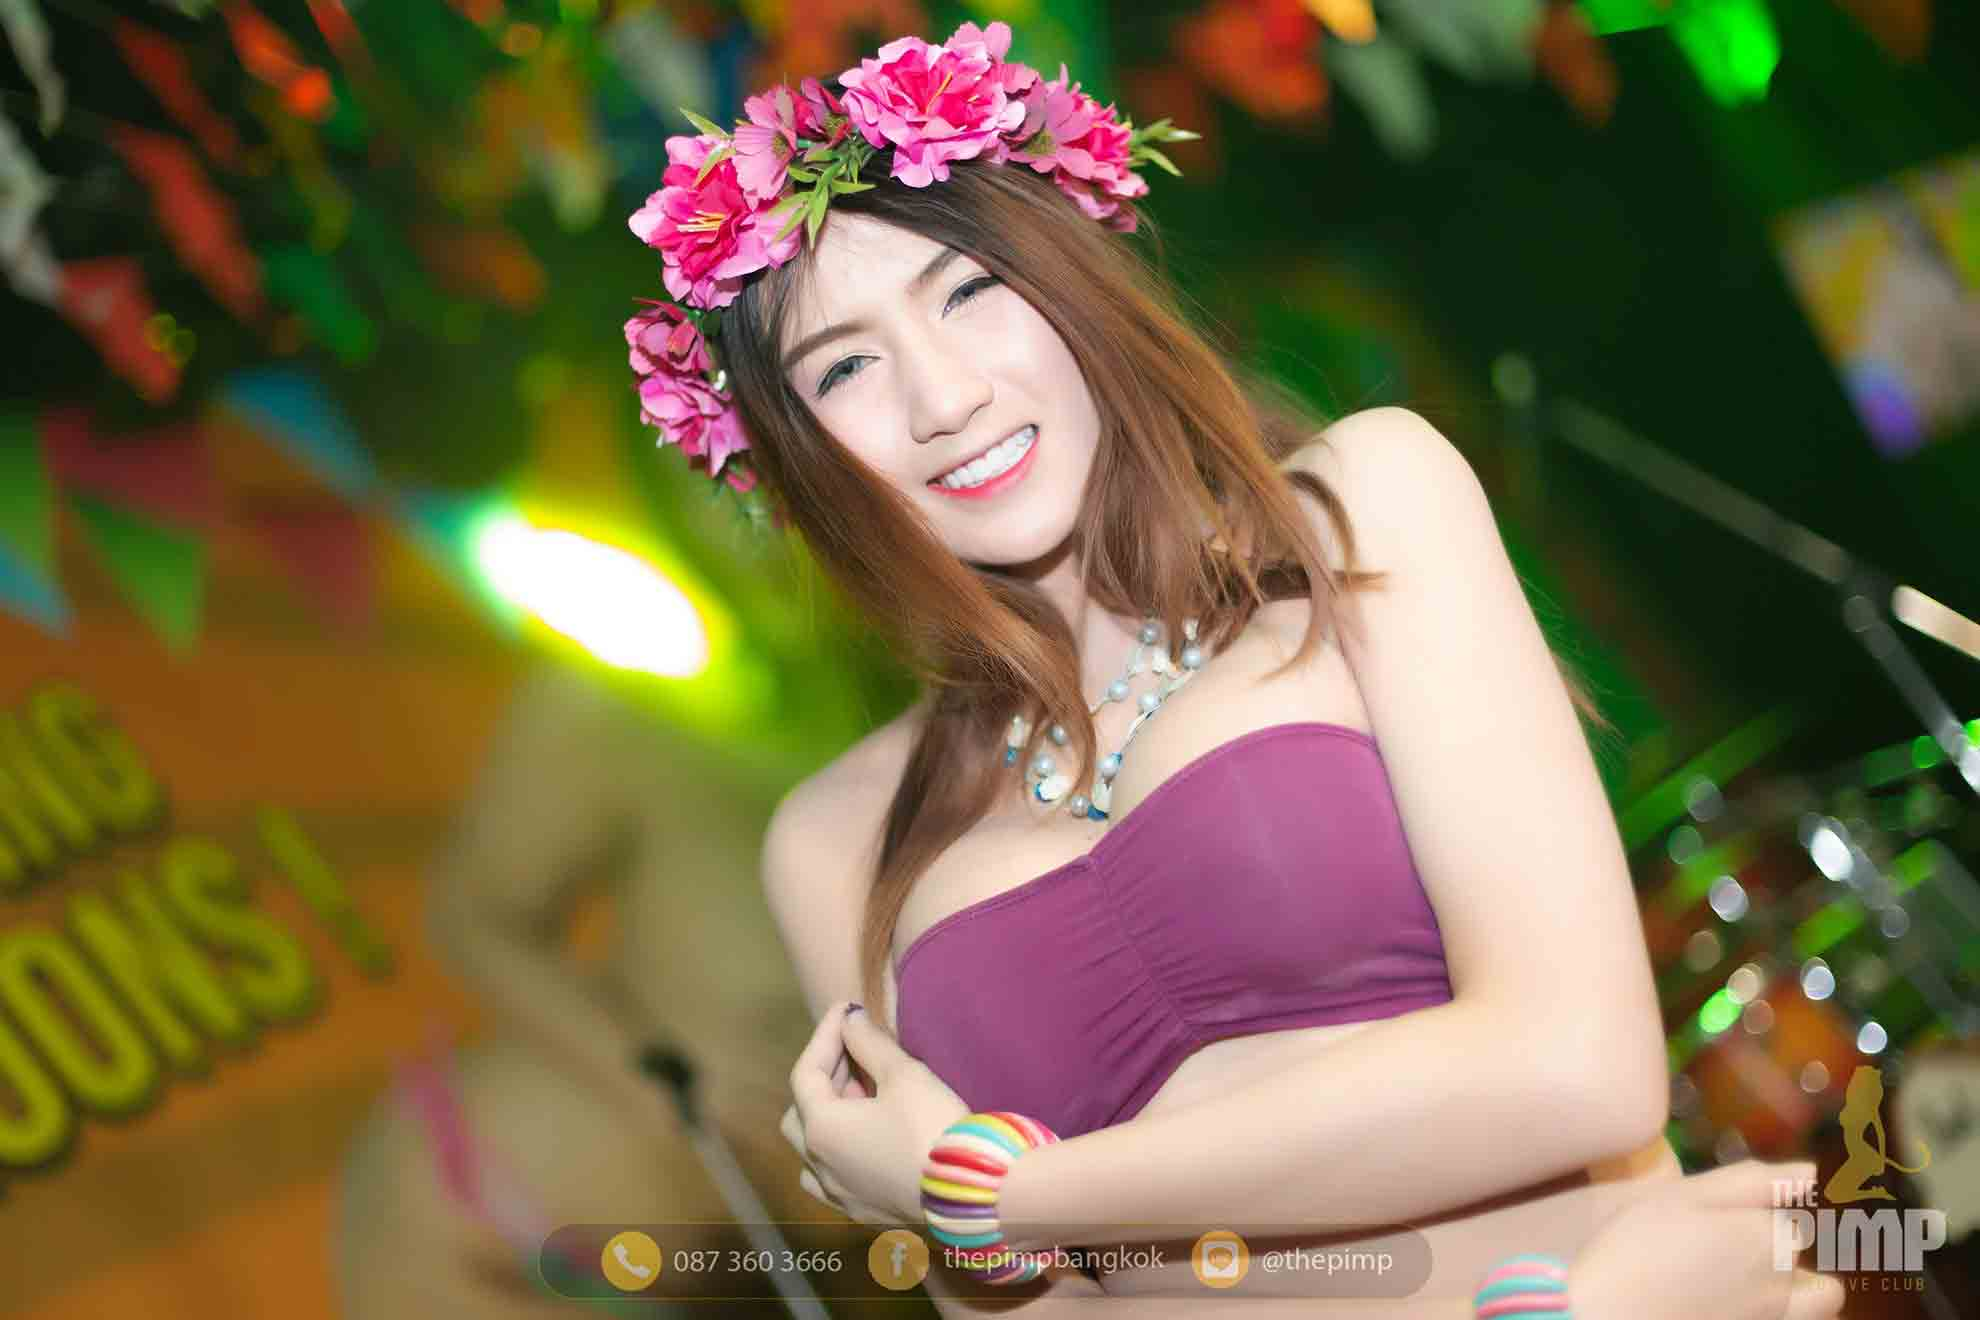 Cosplay Party with Pimp Model dressed in Thai style